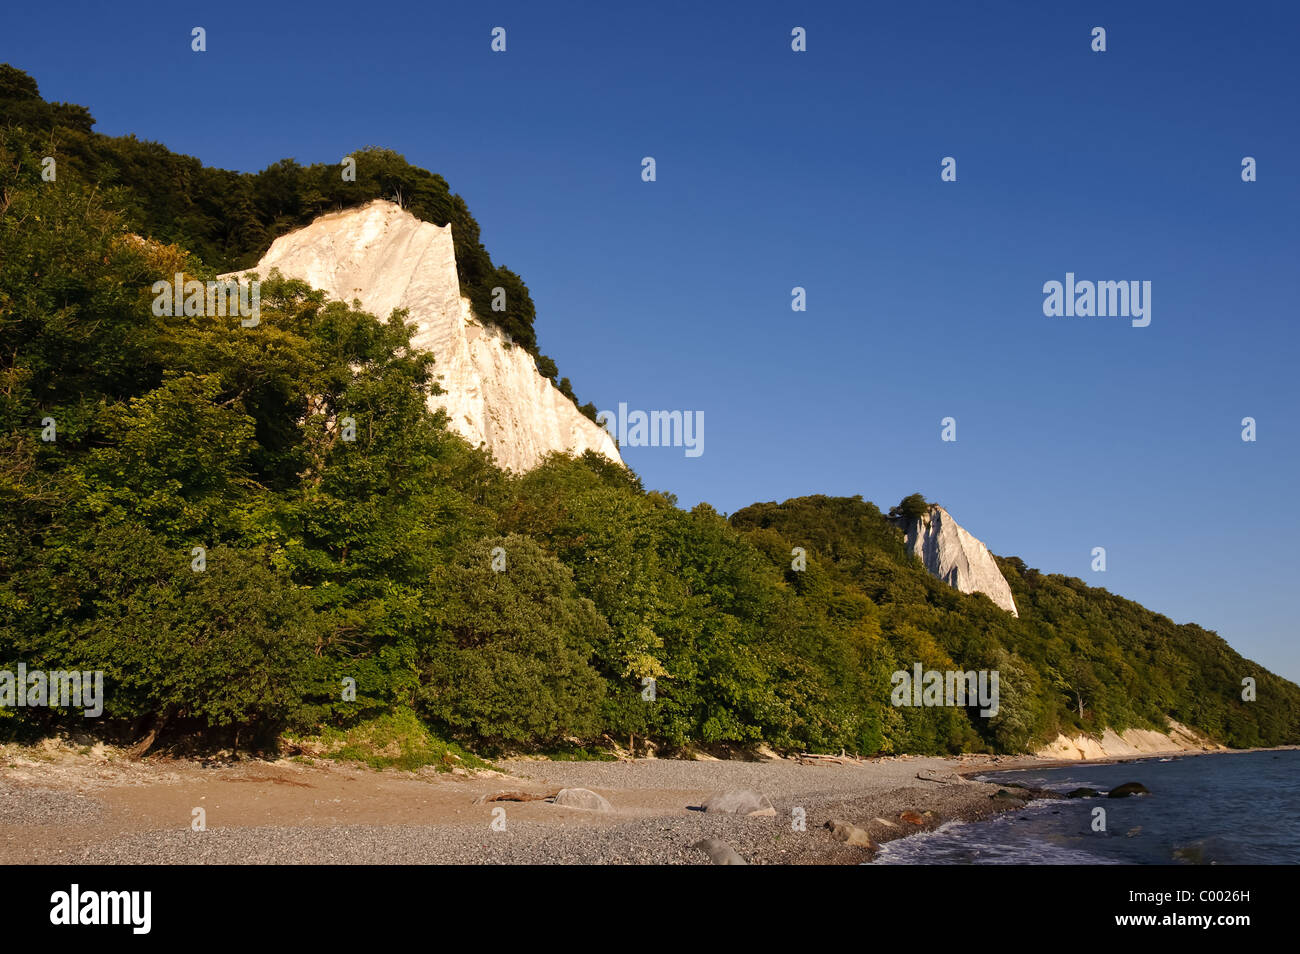 The famous chalk-cliffs at Ruegen Island, Baltic Sea Germany, Europe - Stock Image